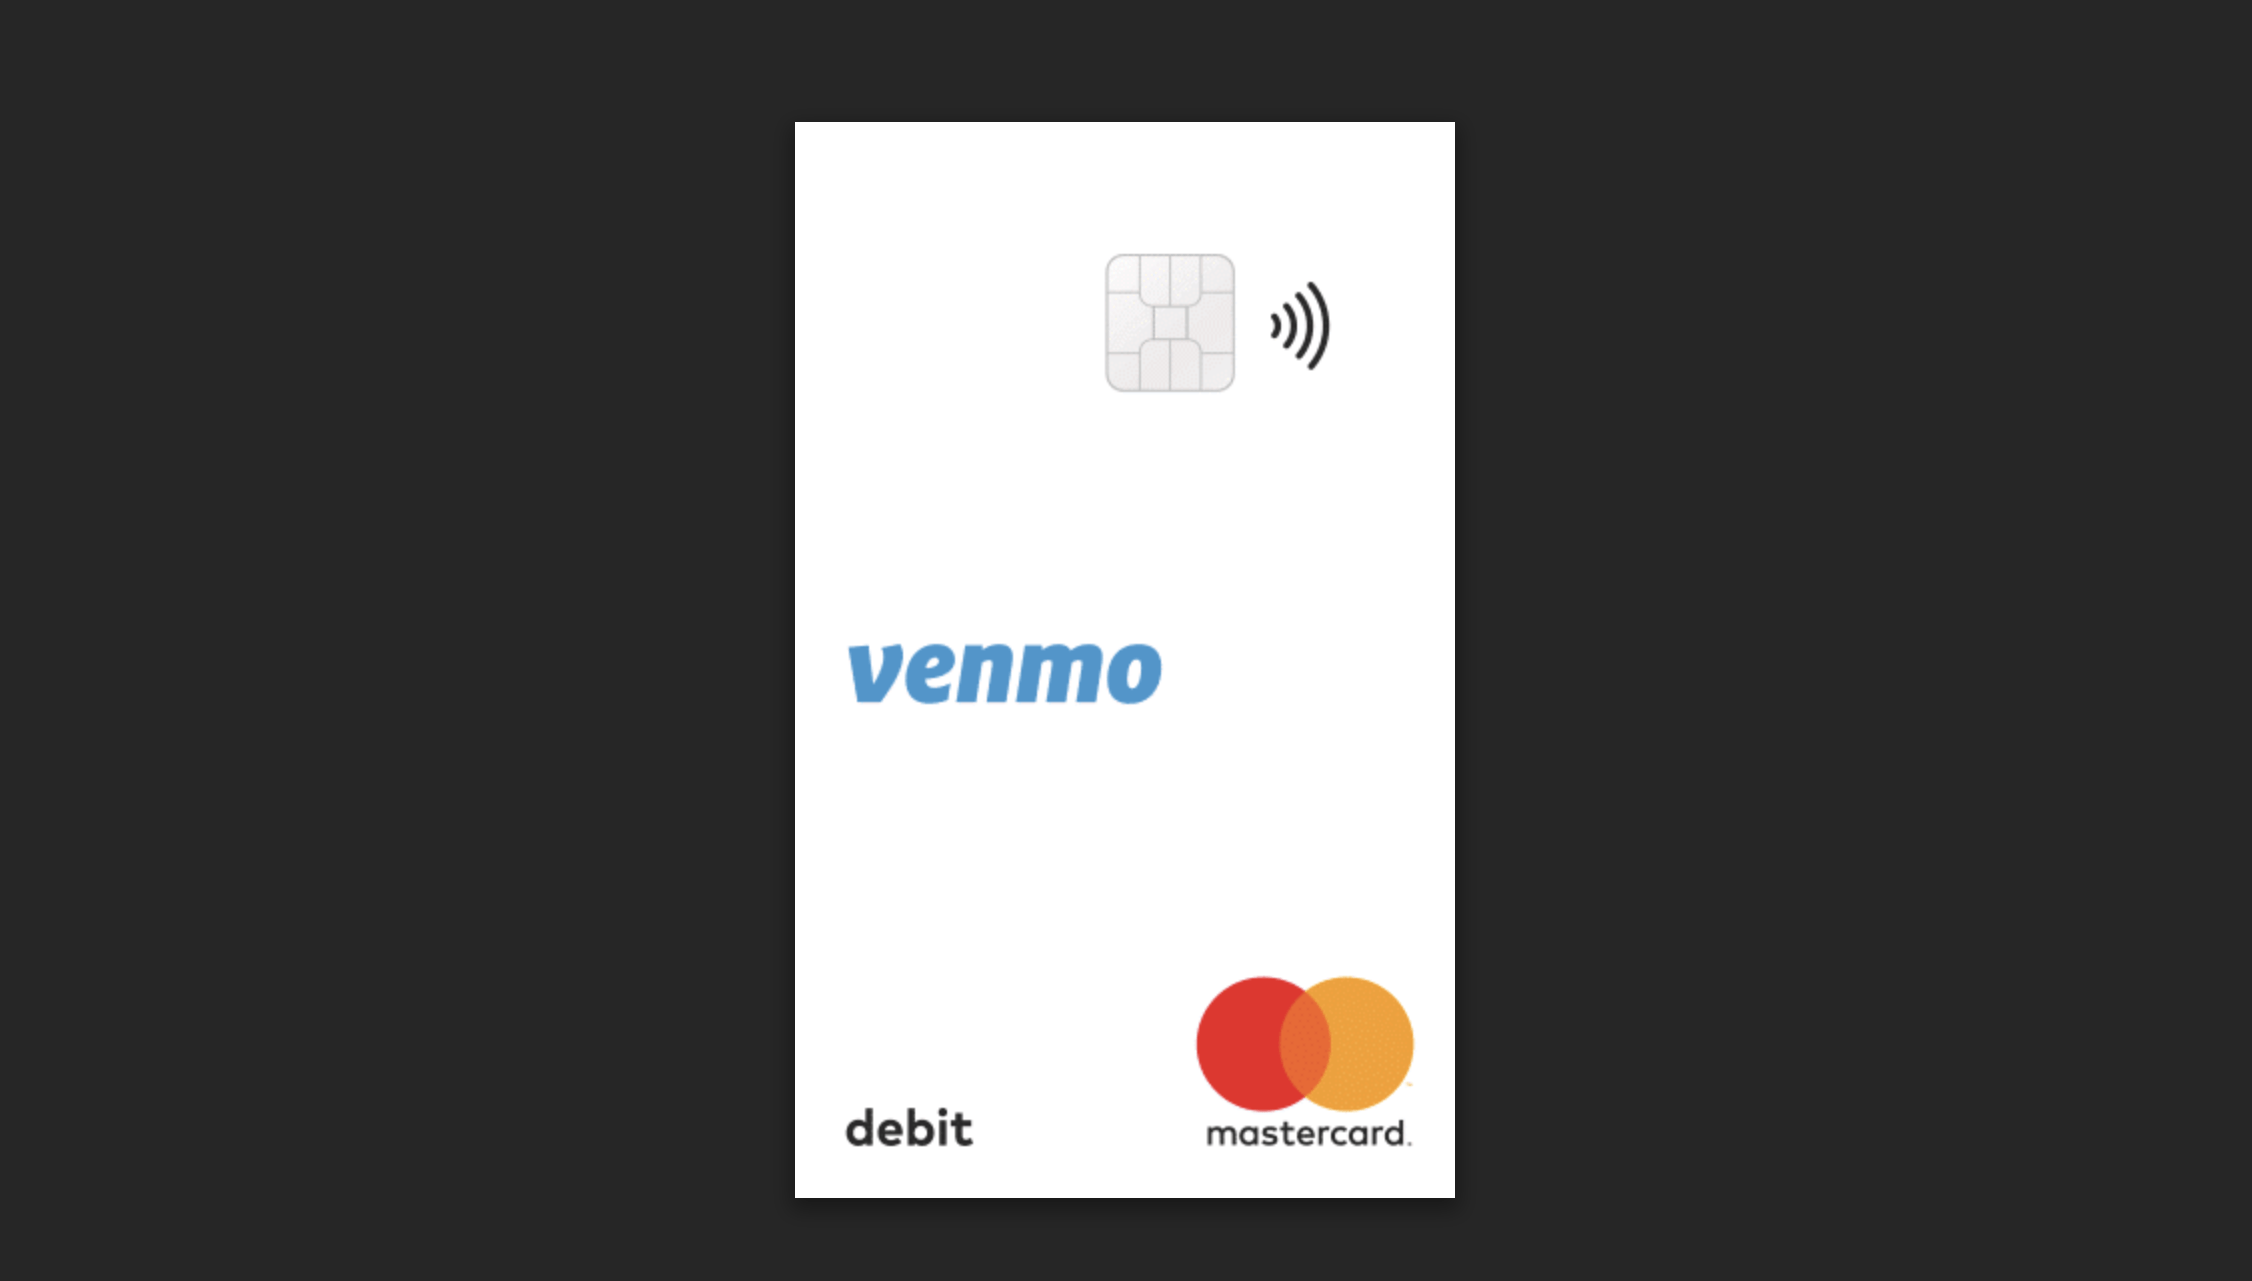 Venmo Logo - Venmo officially launches its own MasterCard-branded debit card ...